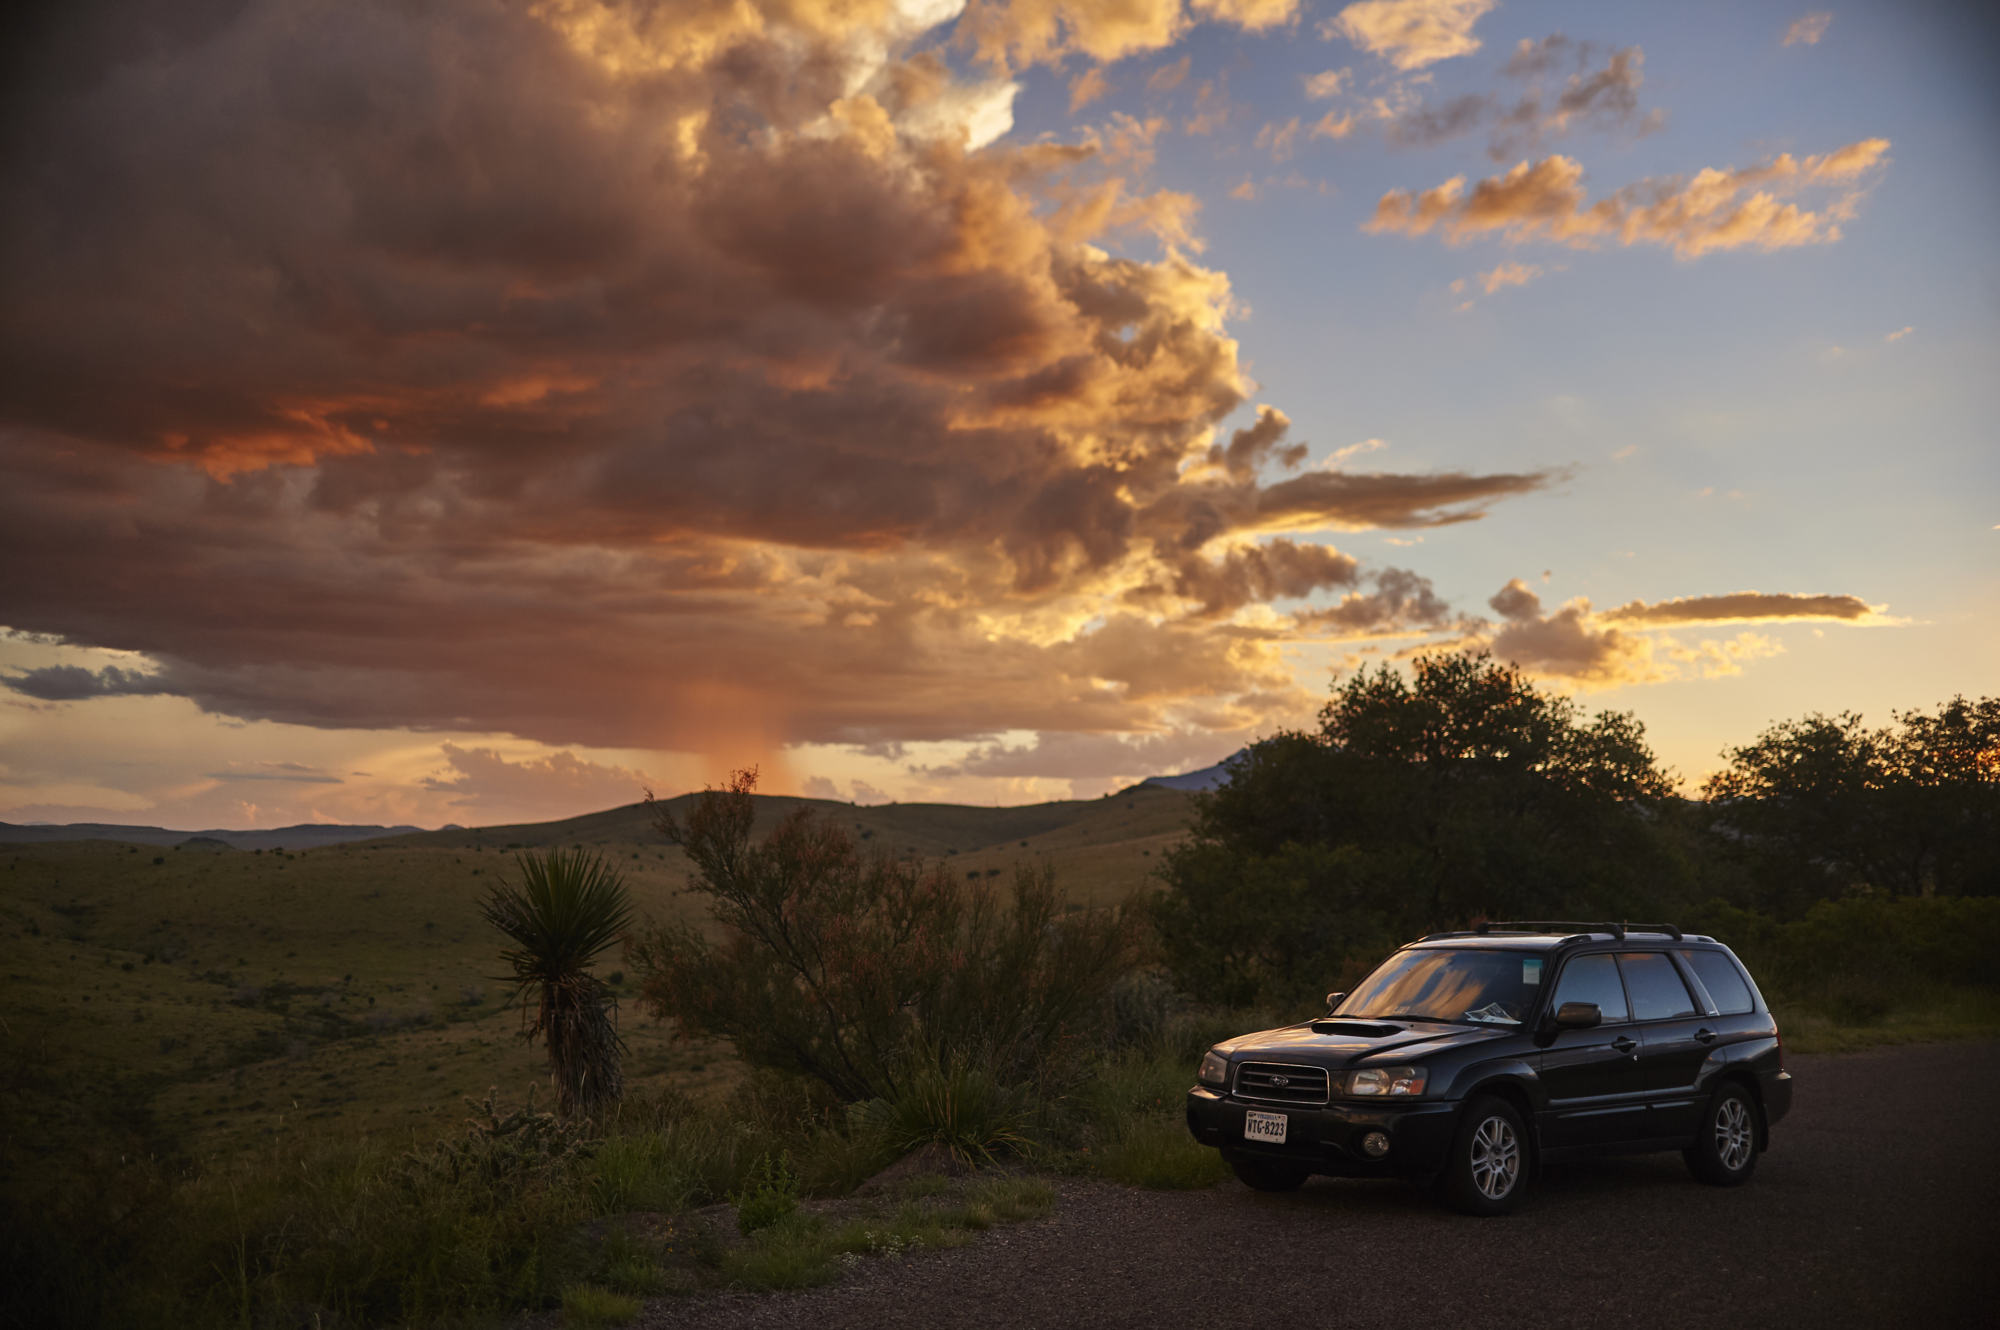 """Part of my """"Most Beautiful Parking Lots"""" Series. Subaru Forester XT in front of a sunset."""